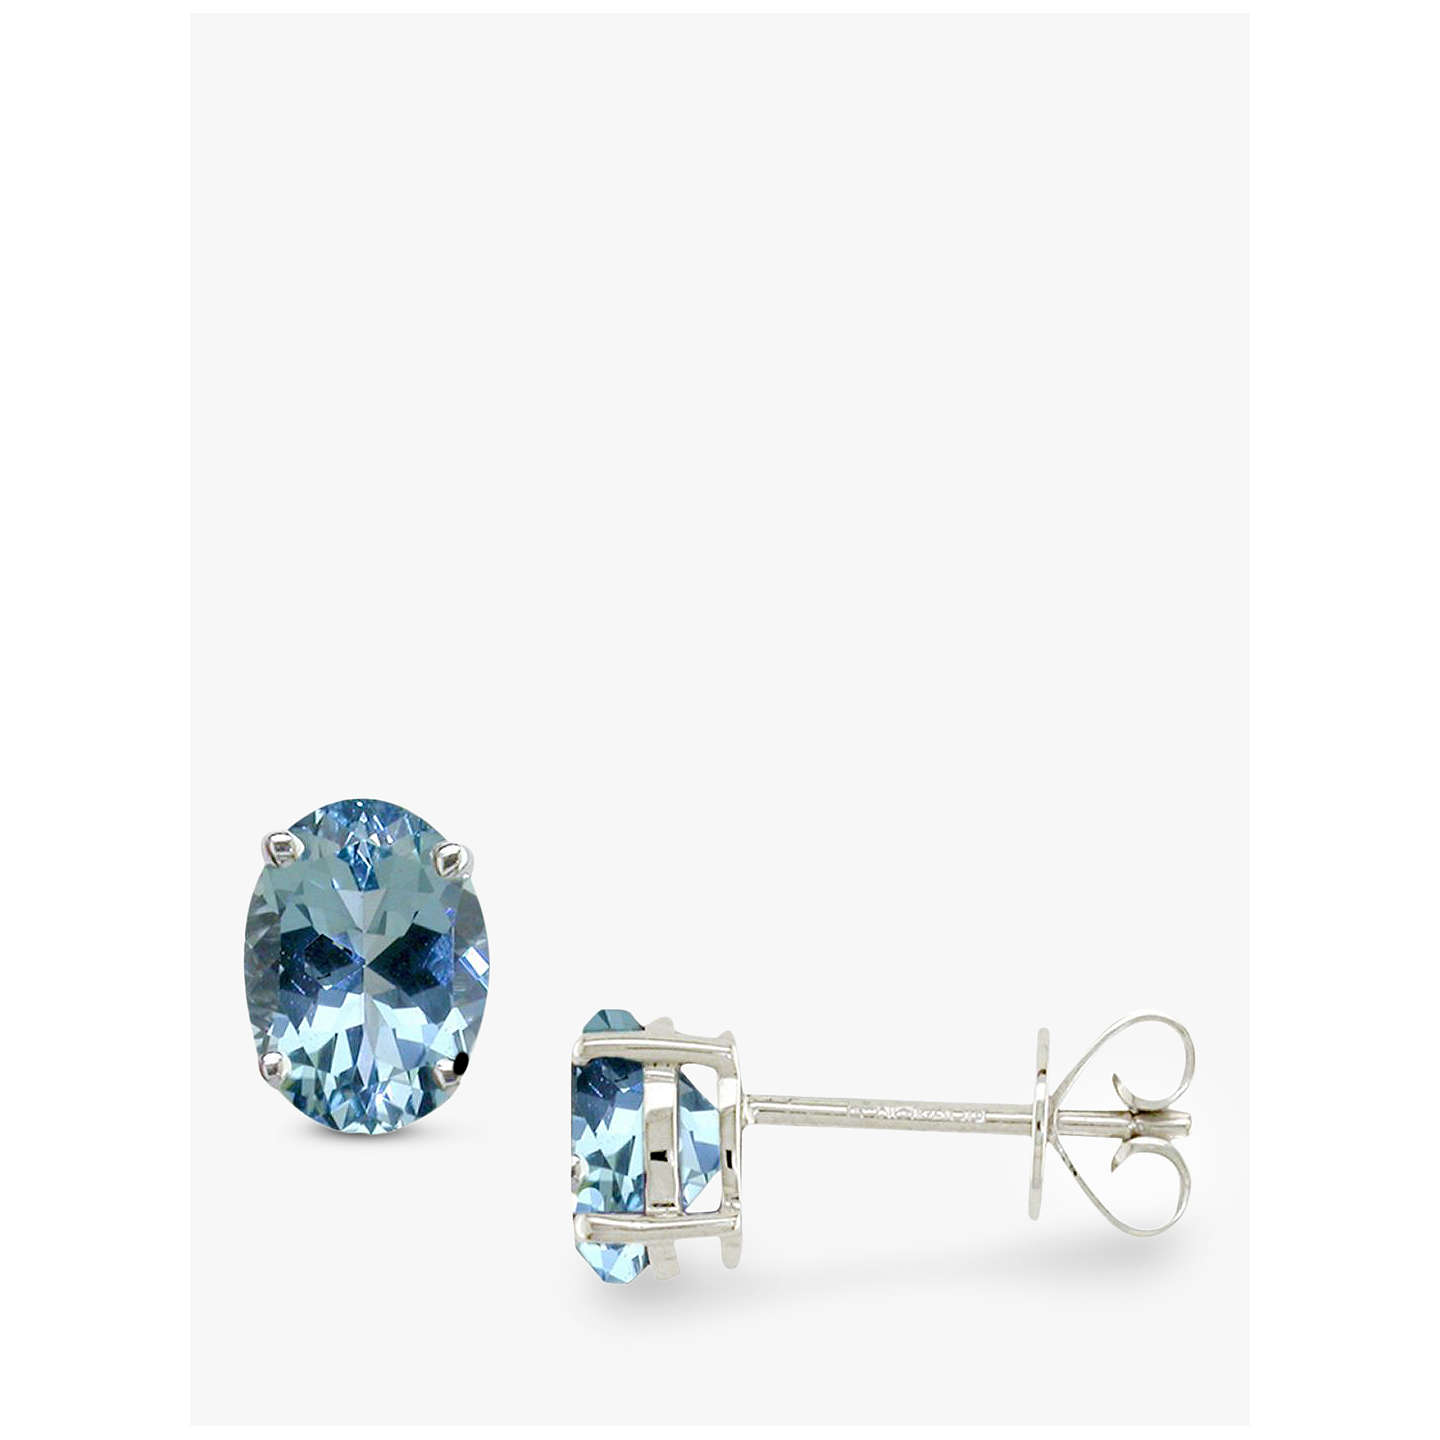 aqua jewelry silver aquamarine women metallic diamond octagon le earrings stud s marine vian white gold lyst